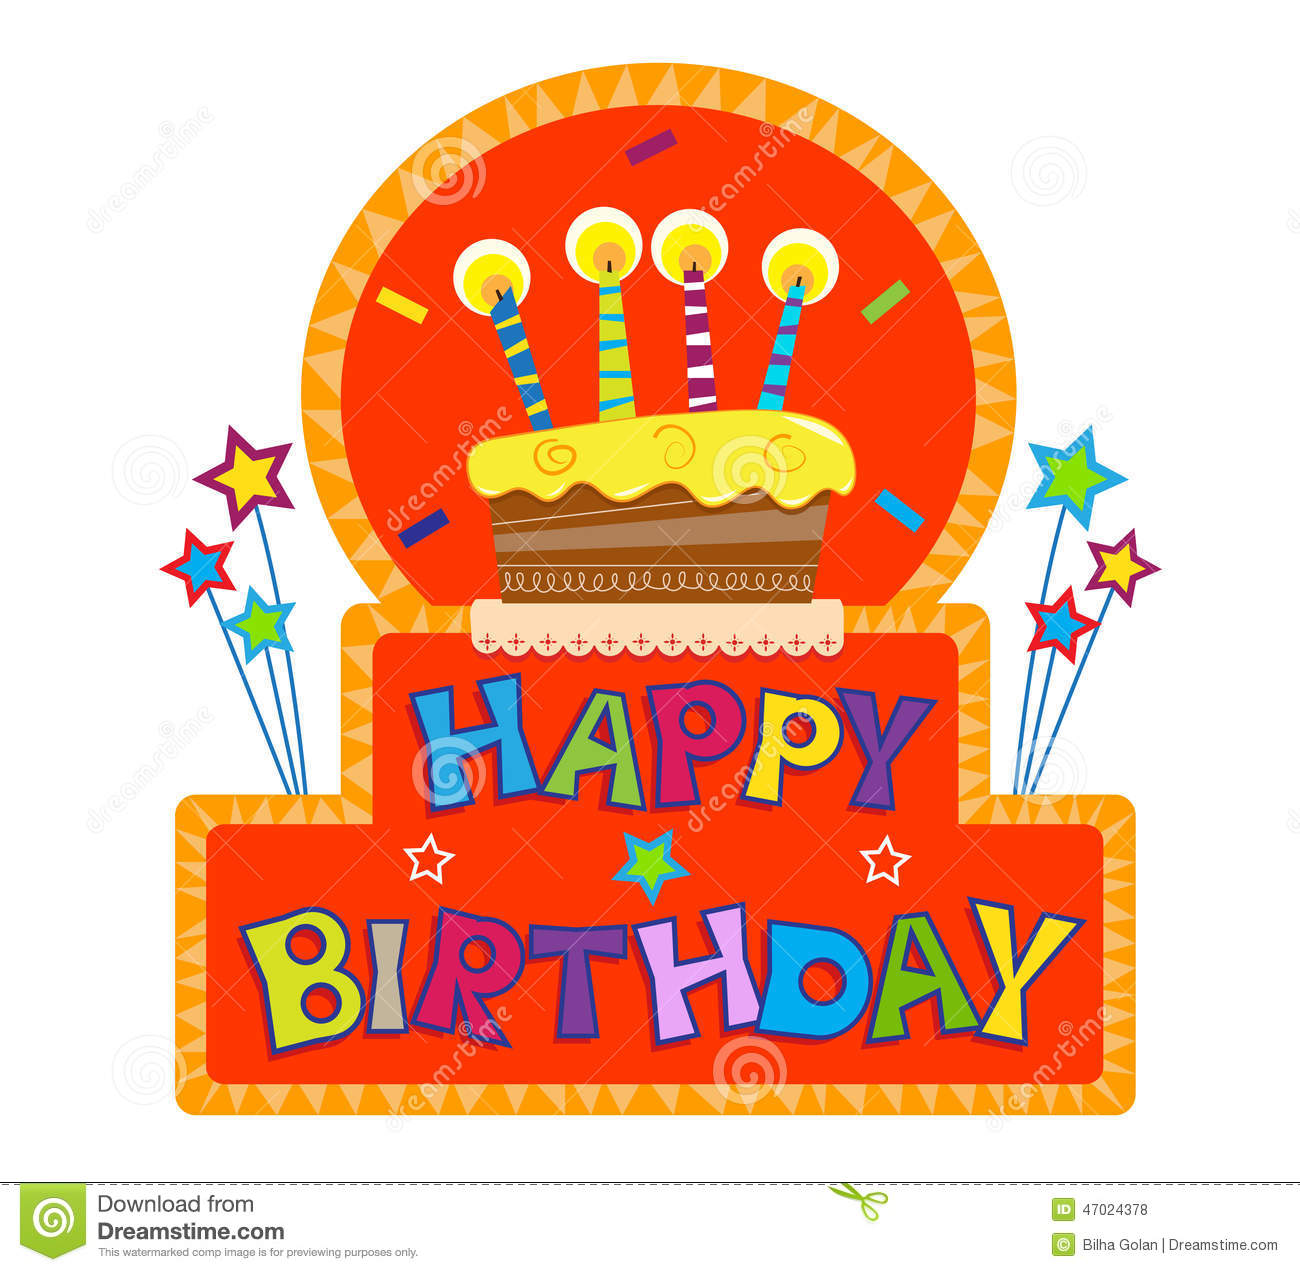 a picture of a happy birthday sign ; happy-birthday-sign-cake-candles-top-colorful-eps-47024378